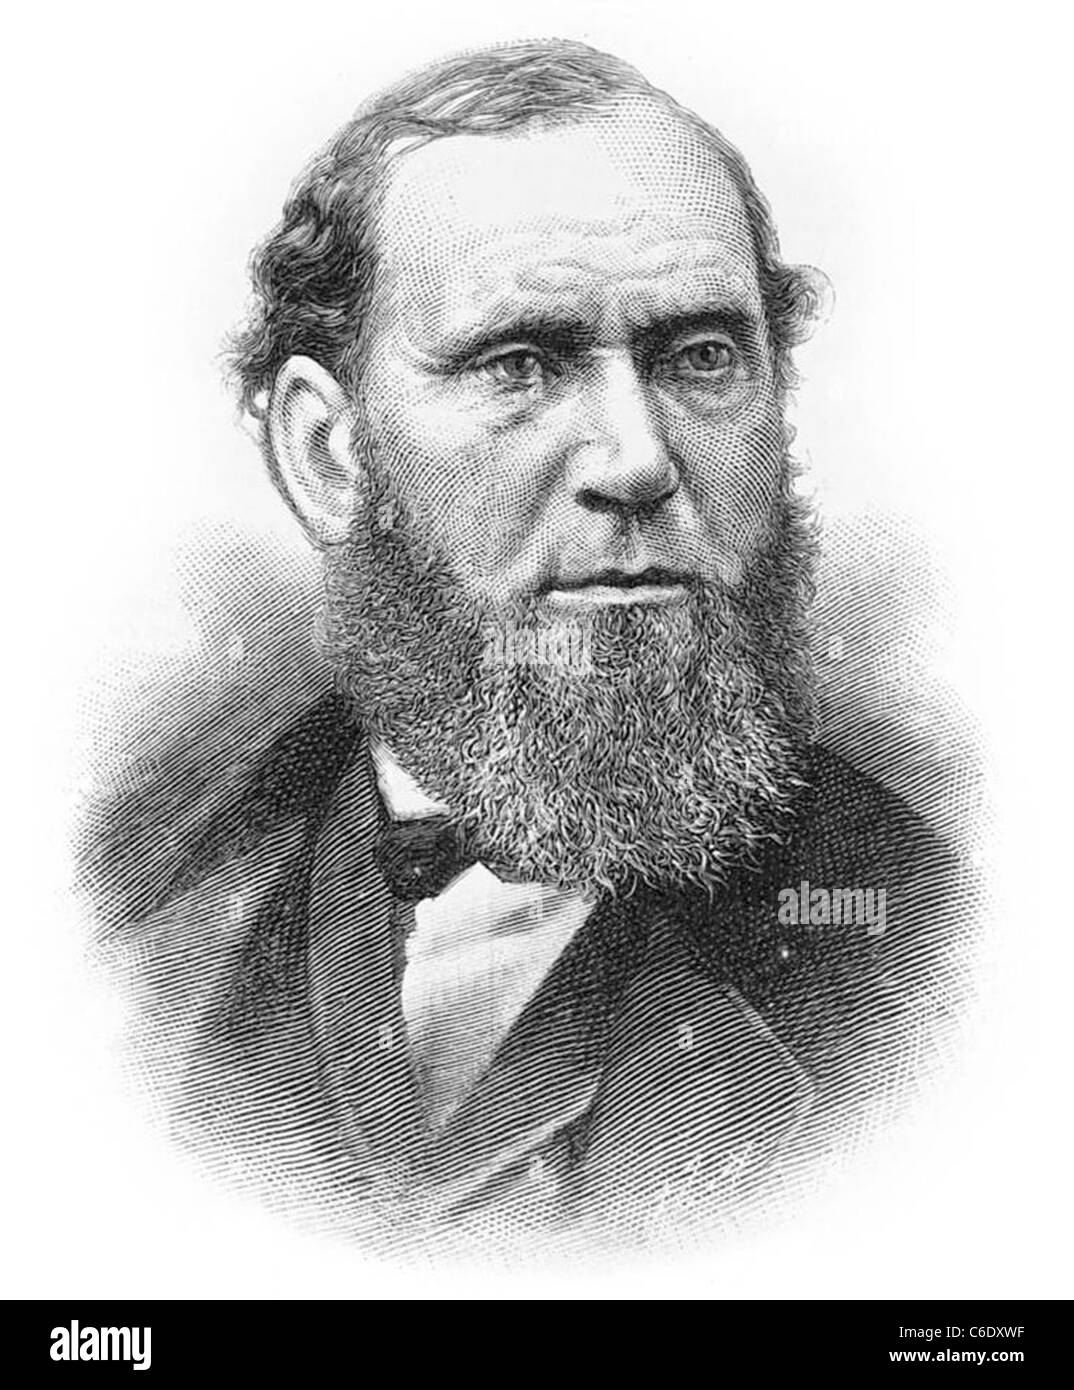 ALLAN PINKERTON (1819-1884)  Scottish-American detective and spy who founded the Pinkerton National Detective Agency - Stock Image